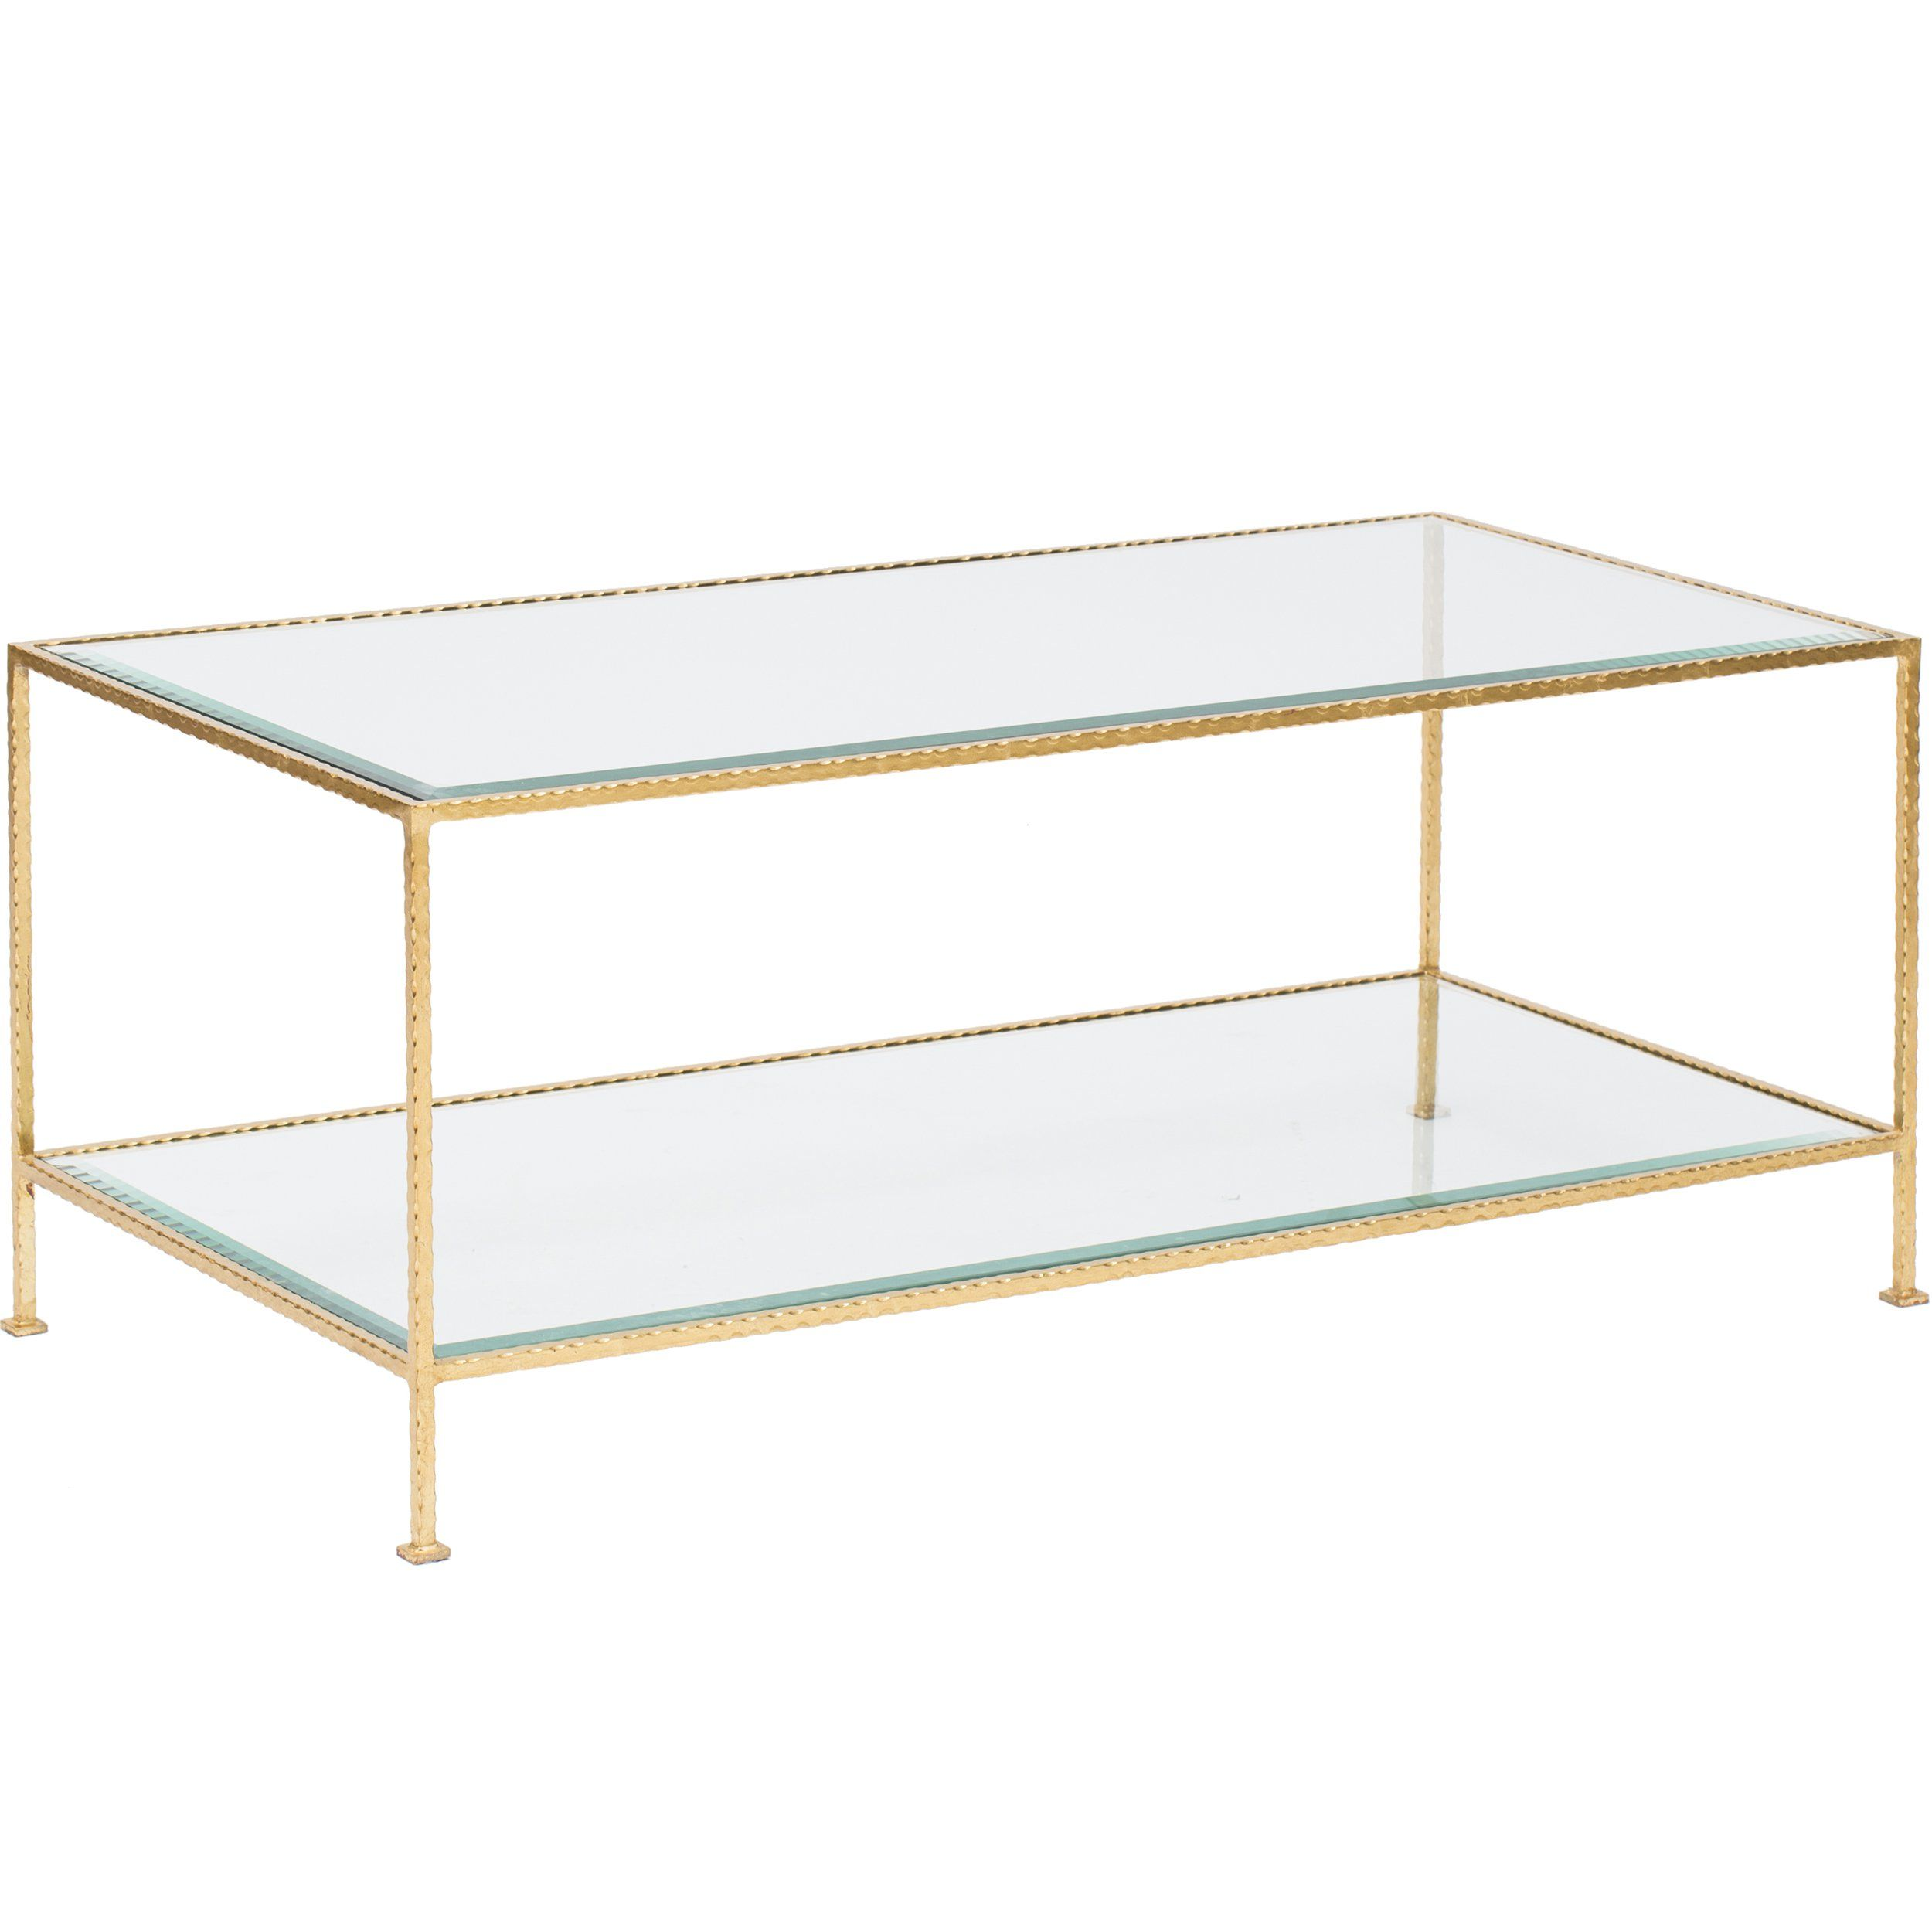 Rectangular Hammered Gold Leaf 2 Tier Coffee Table With Beveled